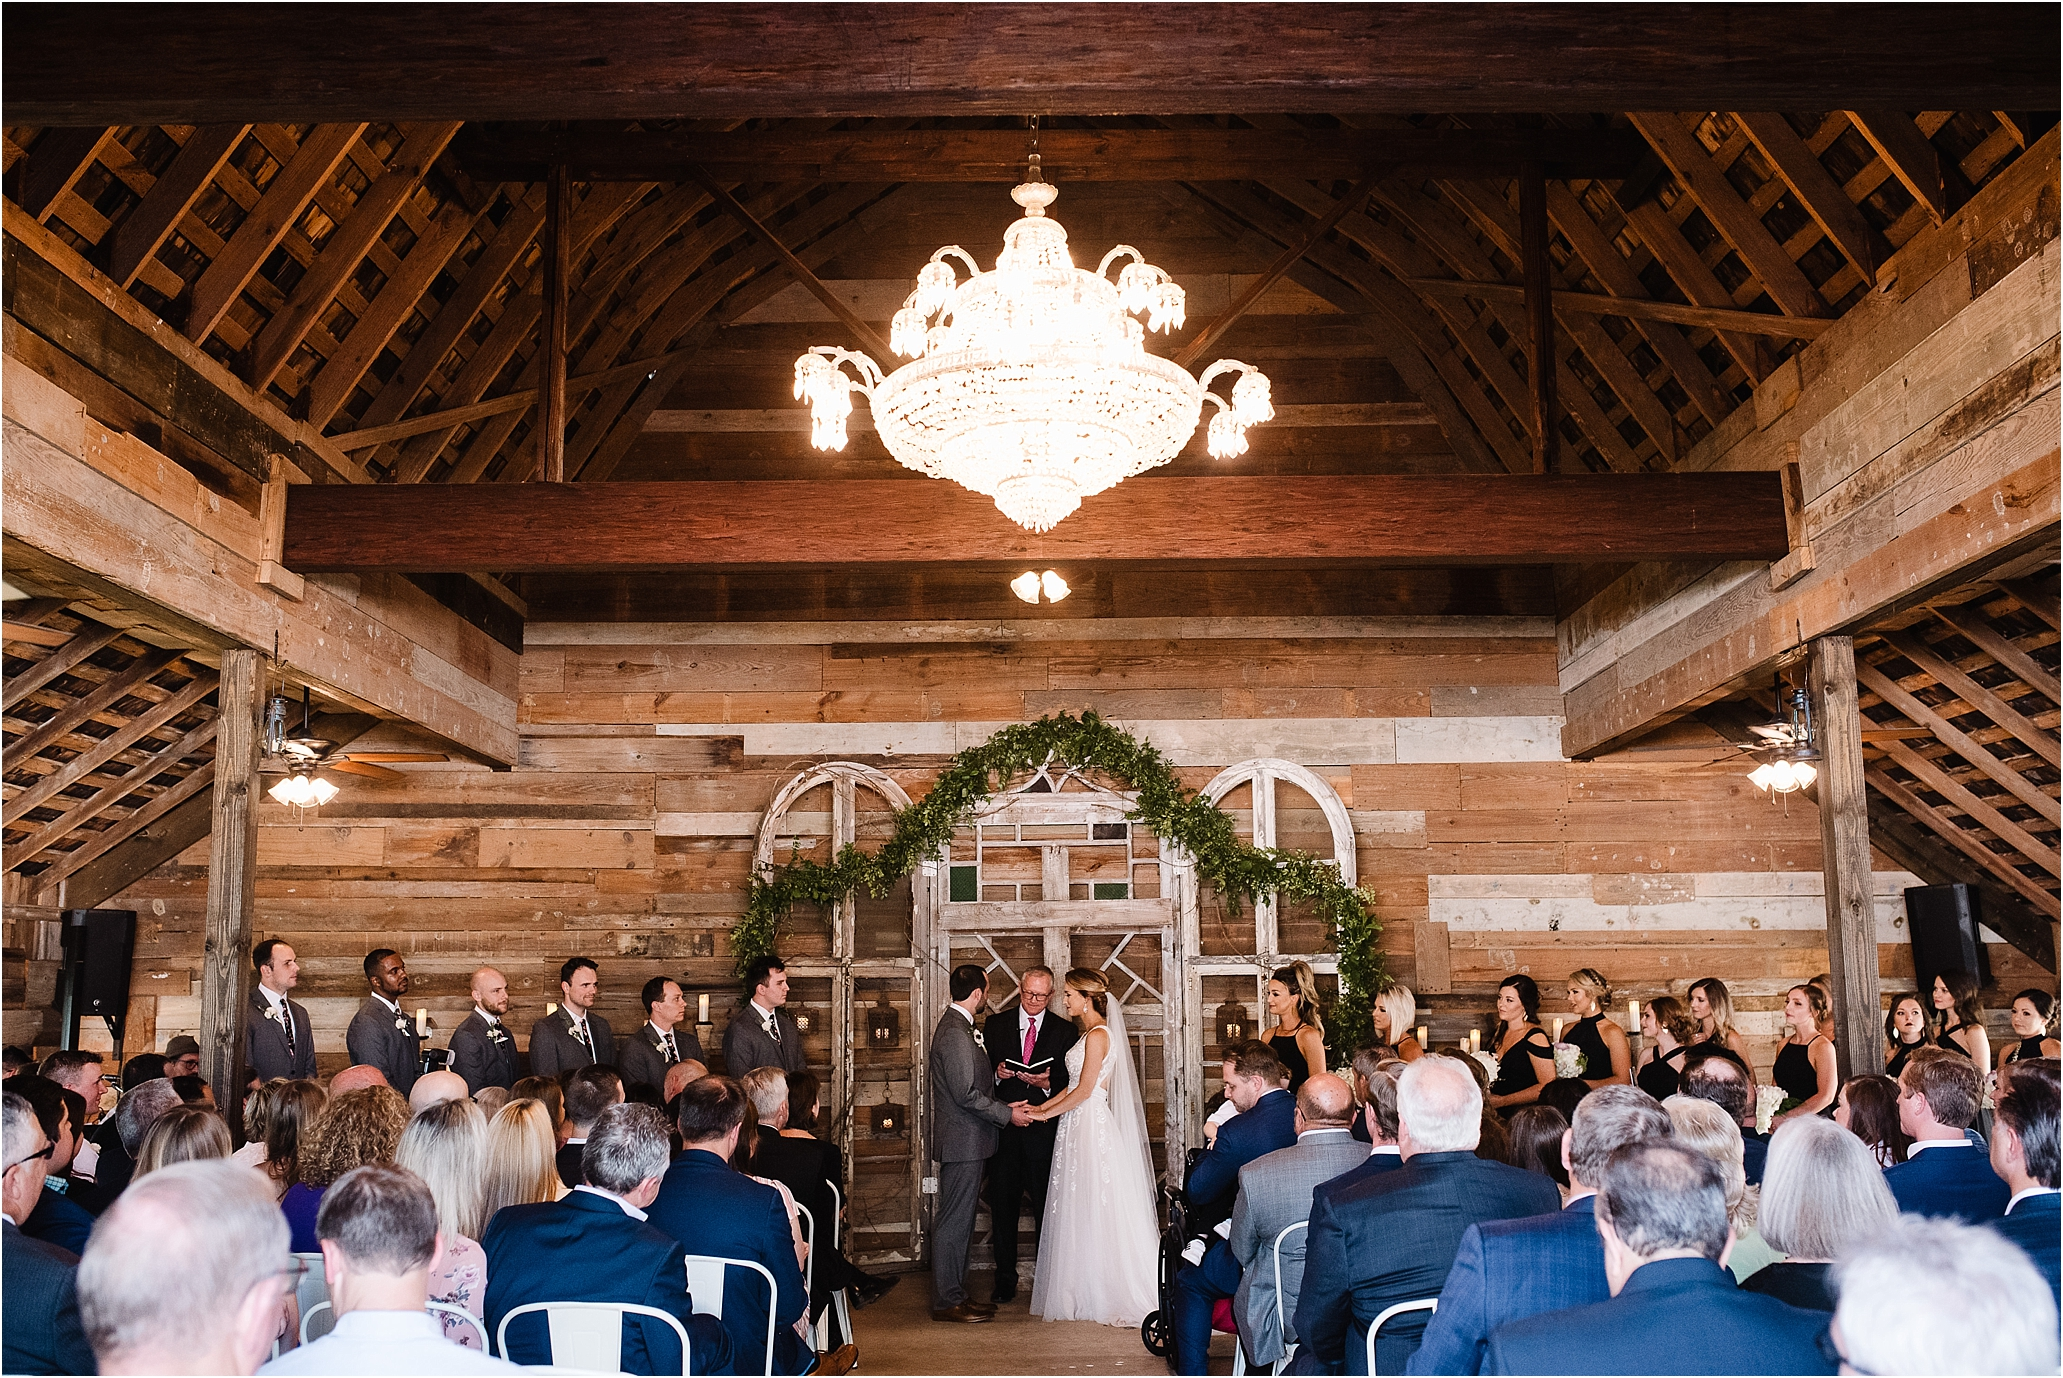 PattisonHouse_TexasWeddingPhotographer_CarlyCrockett&MattBrownWedding_0102.jpg